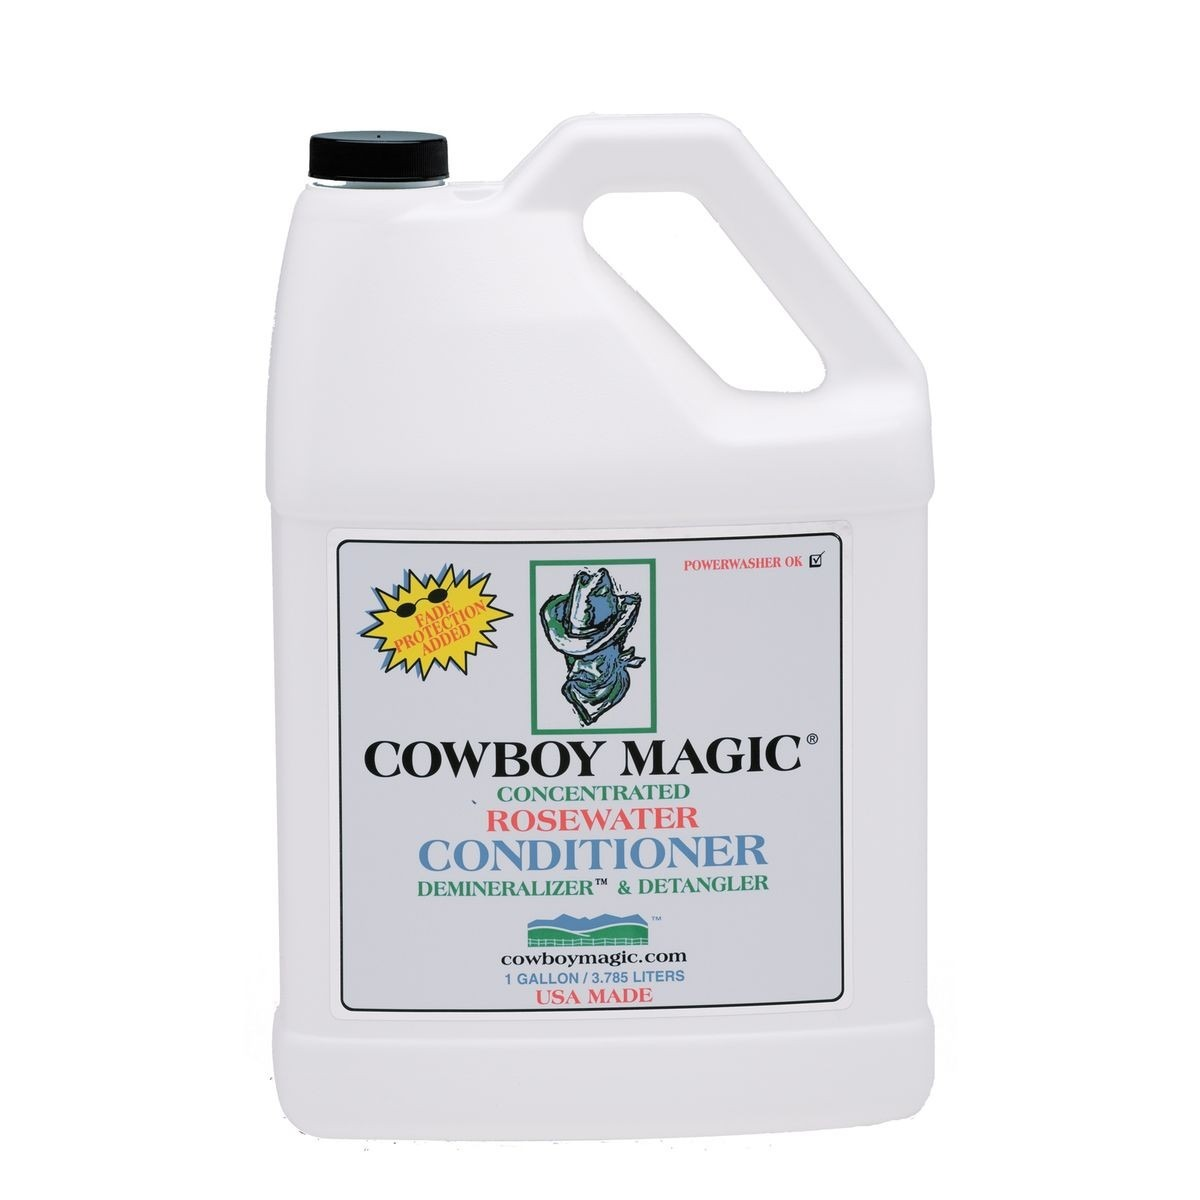 Cowboy Magic Rosewater Condtioner